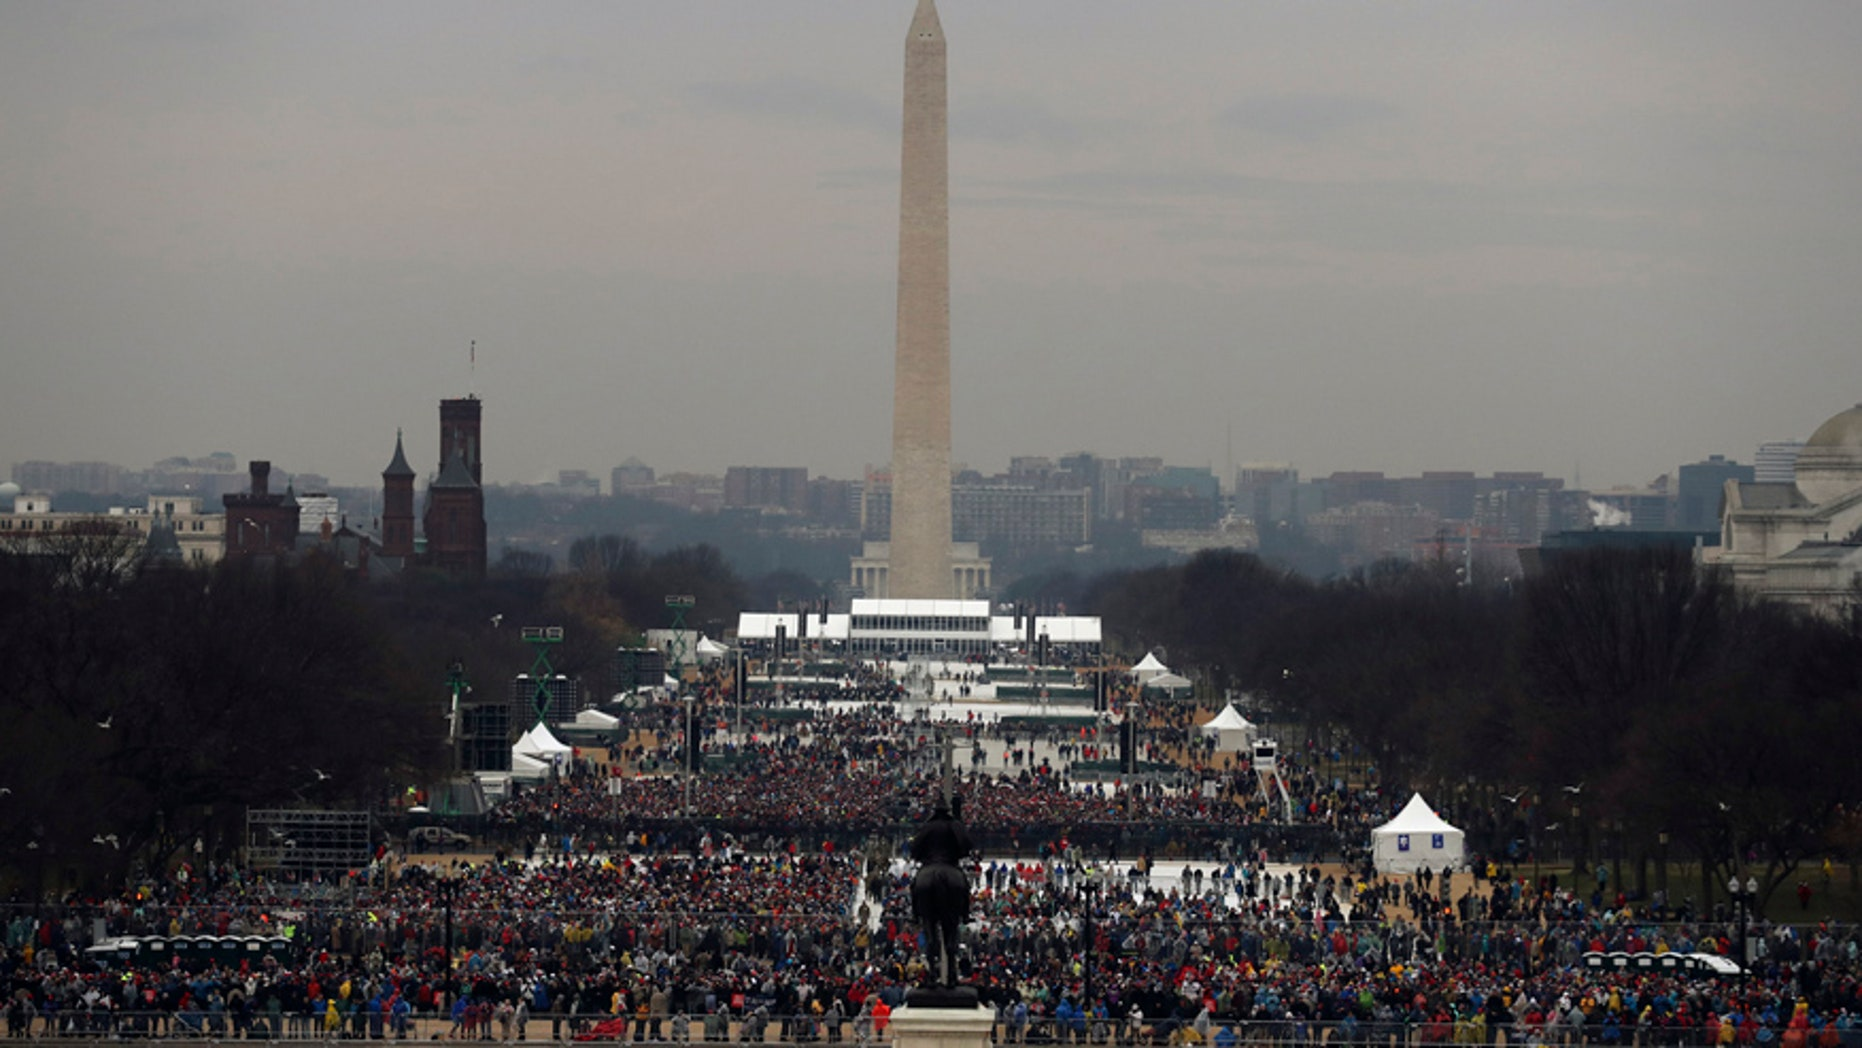 The statue of Civil War General and former US President Ulysses S. Grant faces the Washington Monument and the crowd gathering for the inauguration ceremonies to swear in Donald Trump as the 45th president of the United States at the U.S. Capitol in Washington, U.S., January 20, 2017.  REUTERS/Carlos Barria - RTSWGVS